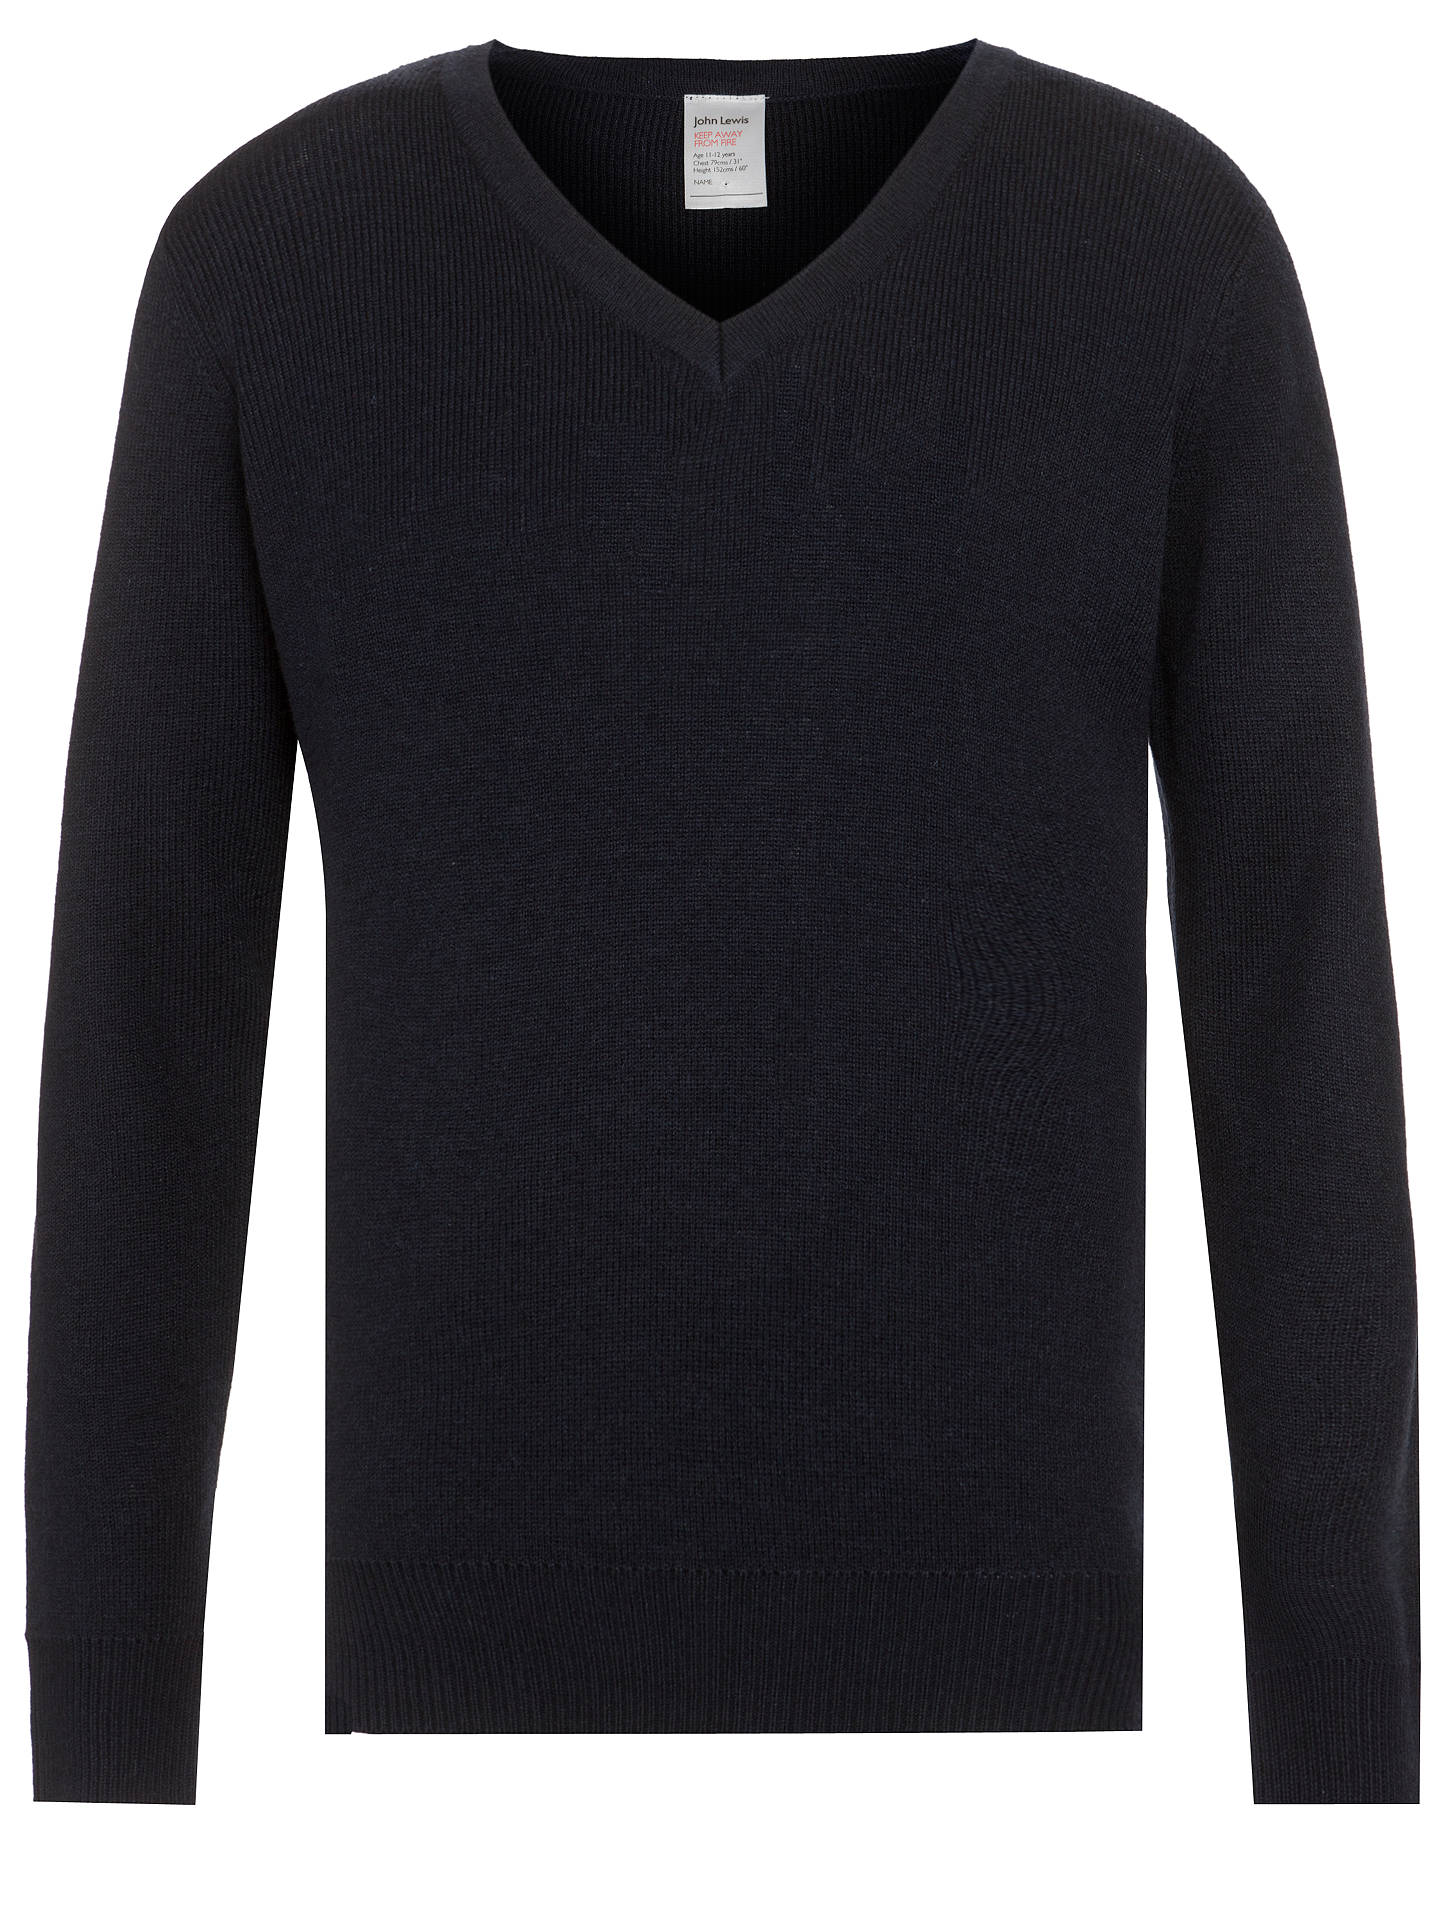 Buy John Lewis & Partners Wool Mix V-Neck School Jumper, Navy, 9-10 years Online at johnlewis.com